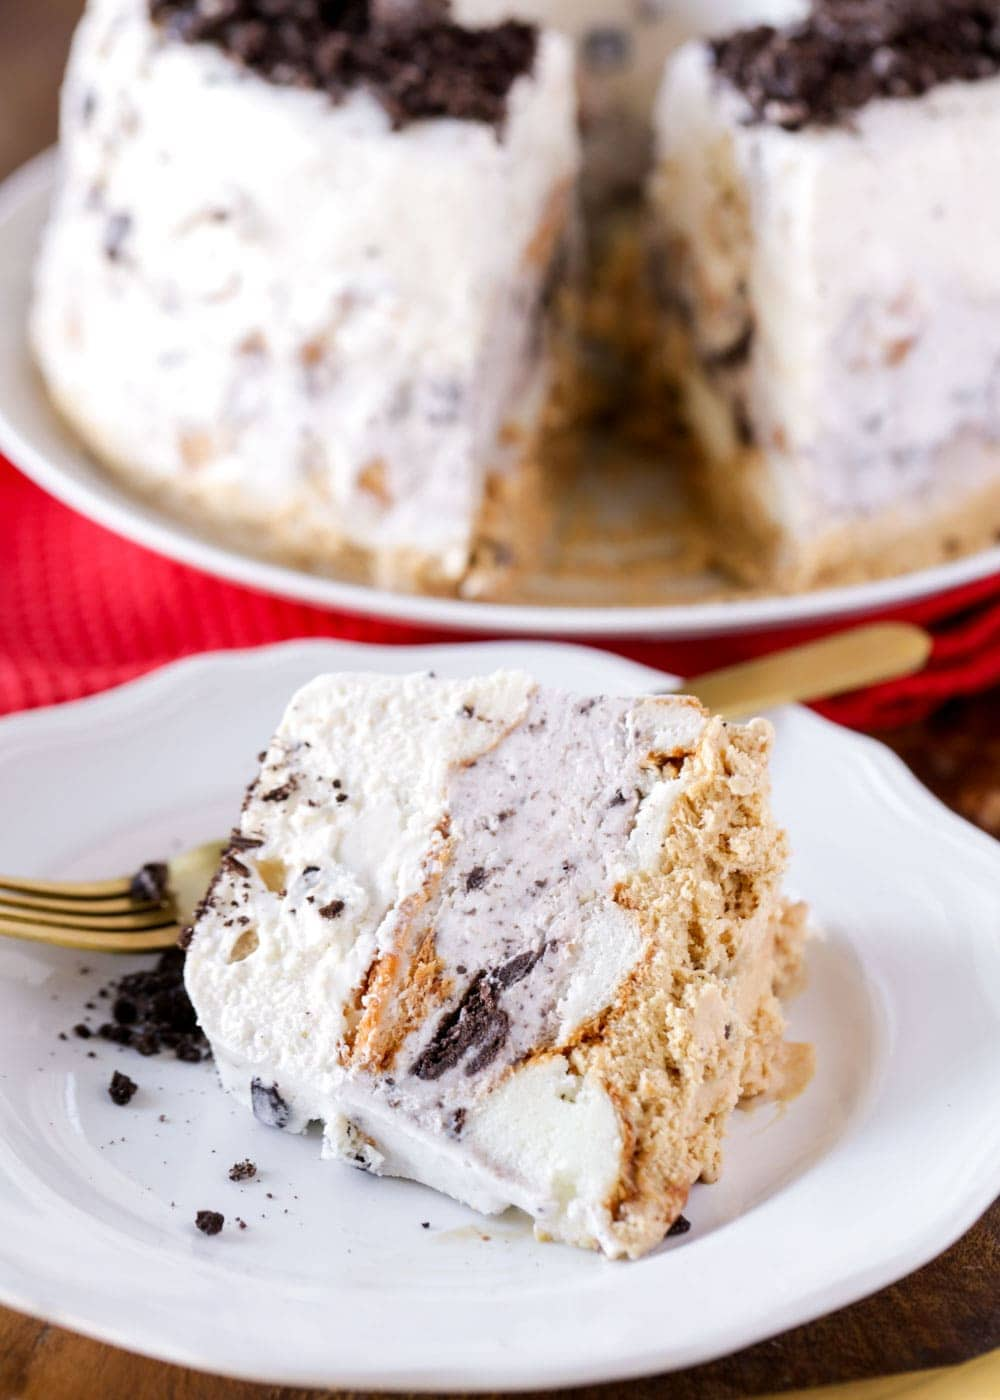 A slice of angel food ice cream cake on a white plate